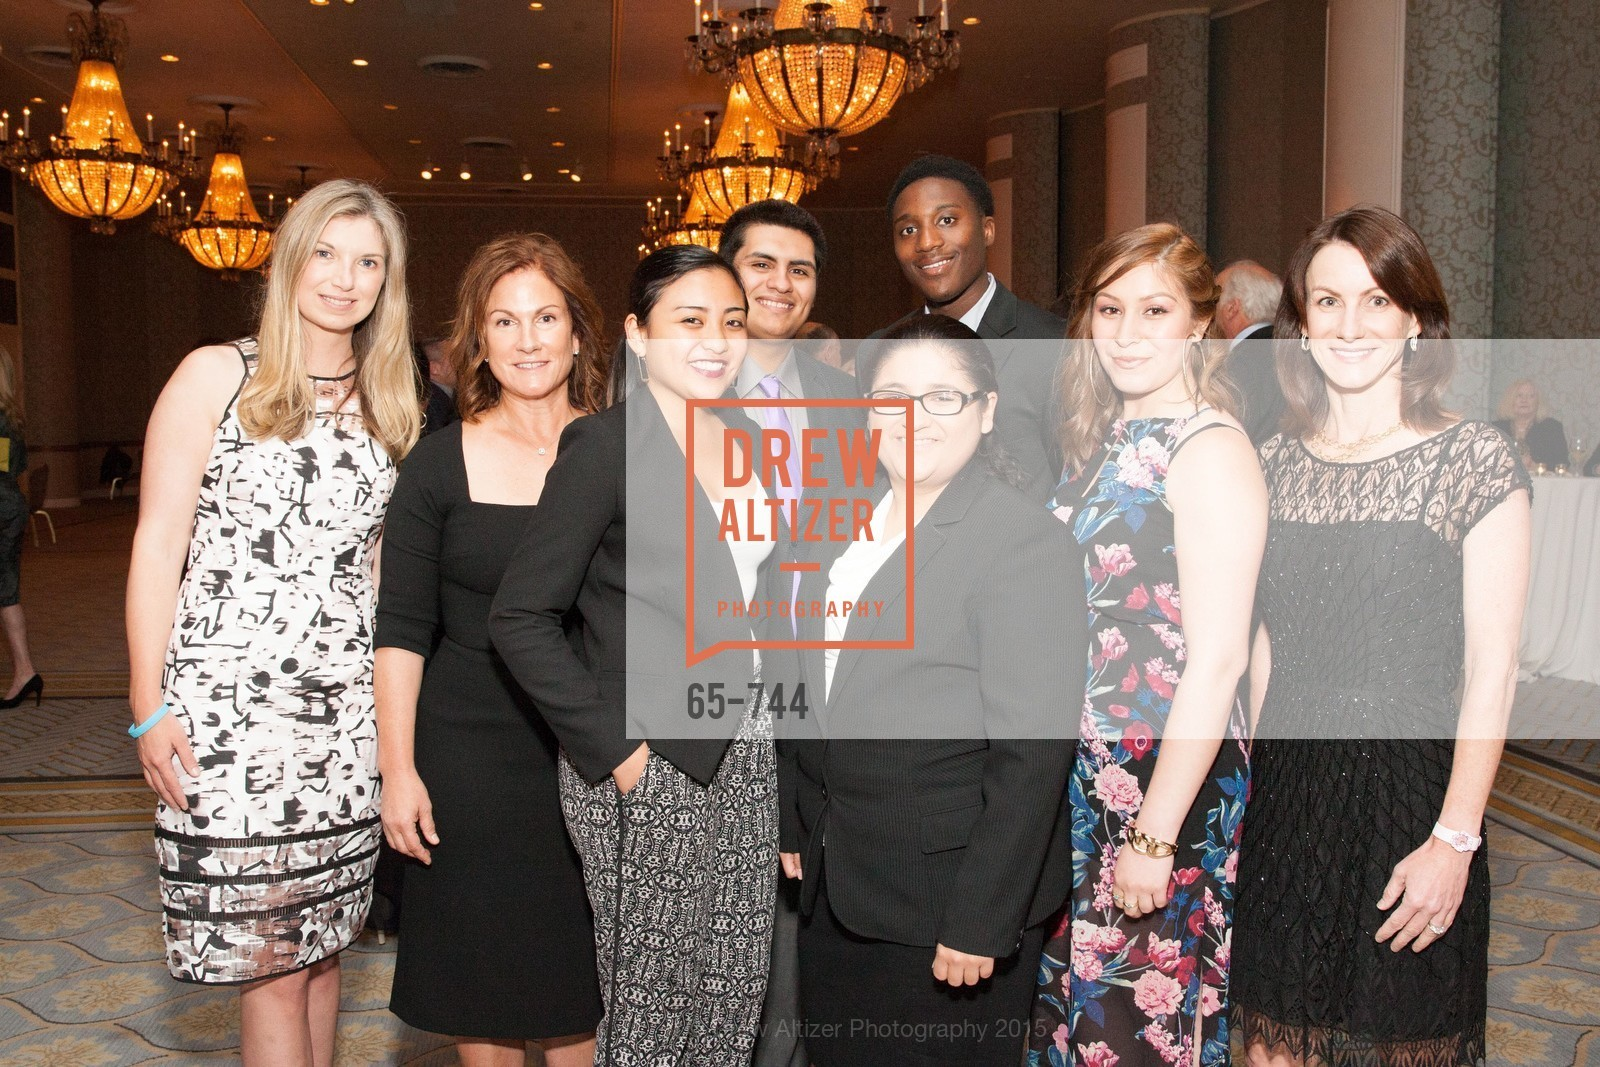 Cameron Phleger, Lorin Costolo, Aeris Velasco, Joe Armijo, Khari Brown, Carmen Sosa, Yuri Huerta, Stephanie Mellin, Celebration of Launch of SHYP in Los Angeles, US, May 20th, 2015,Drew Altizer, Drew Altizer Photography, full-service agency, private events, San Francisco photographer, photographer california